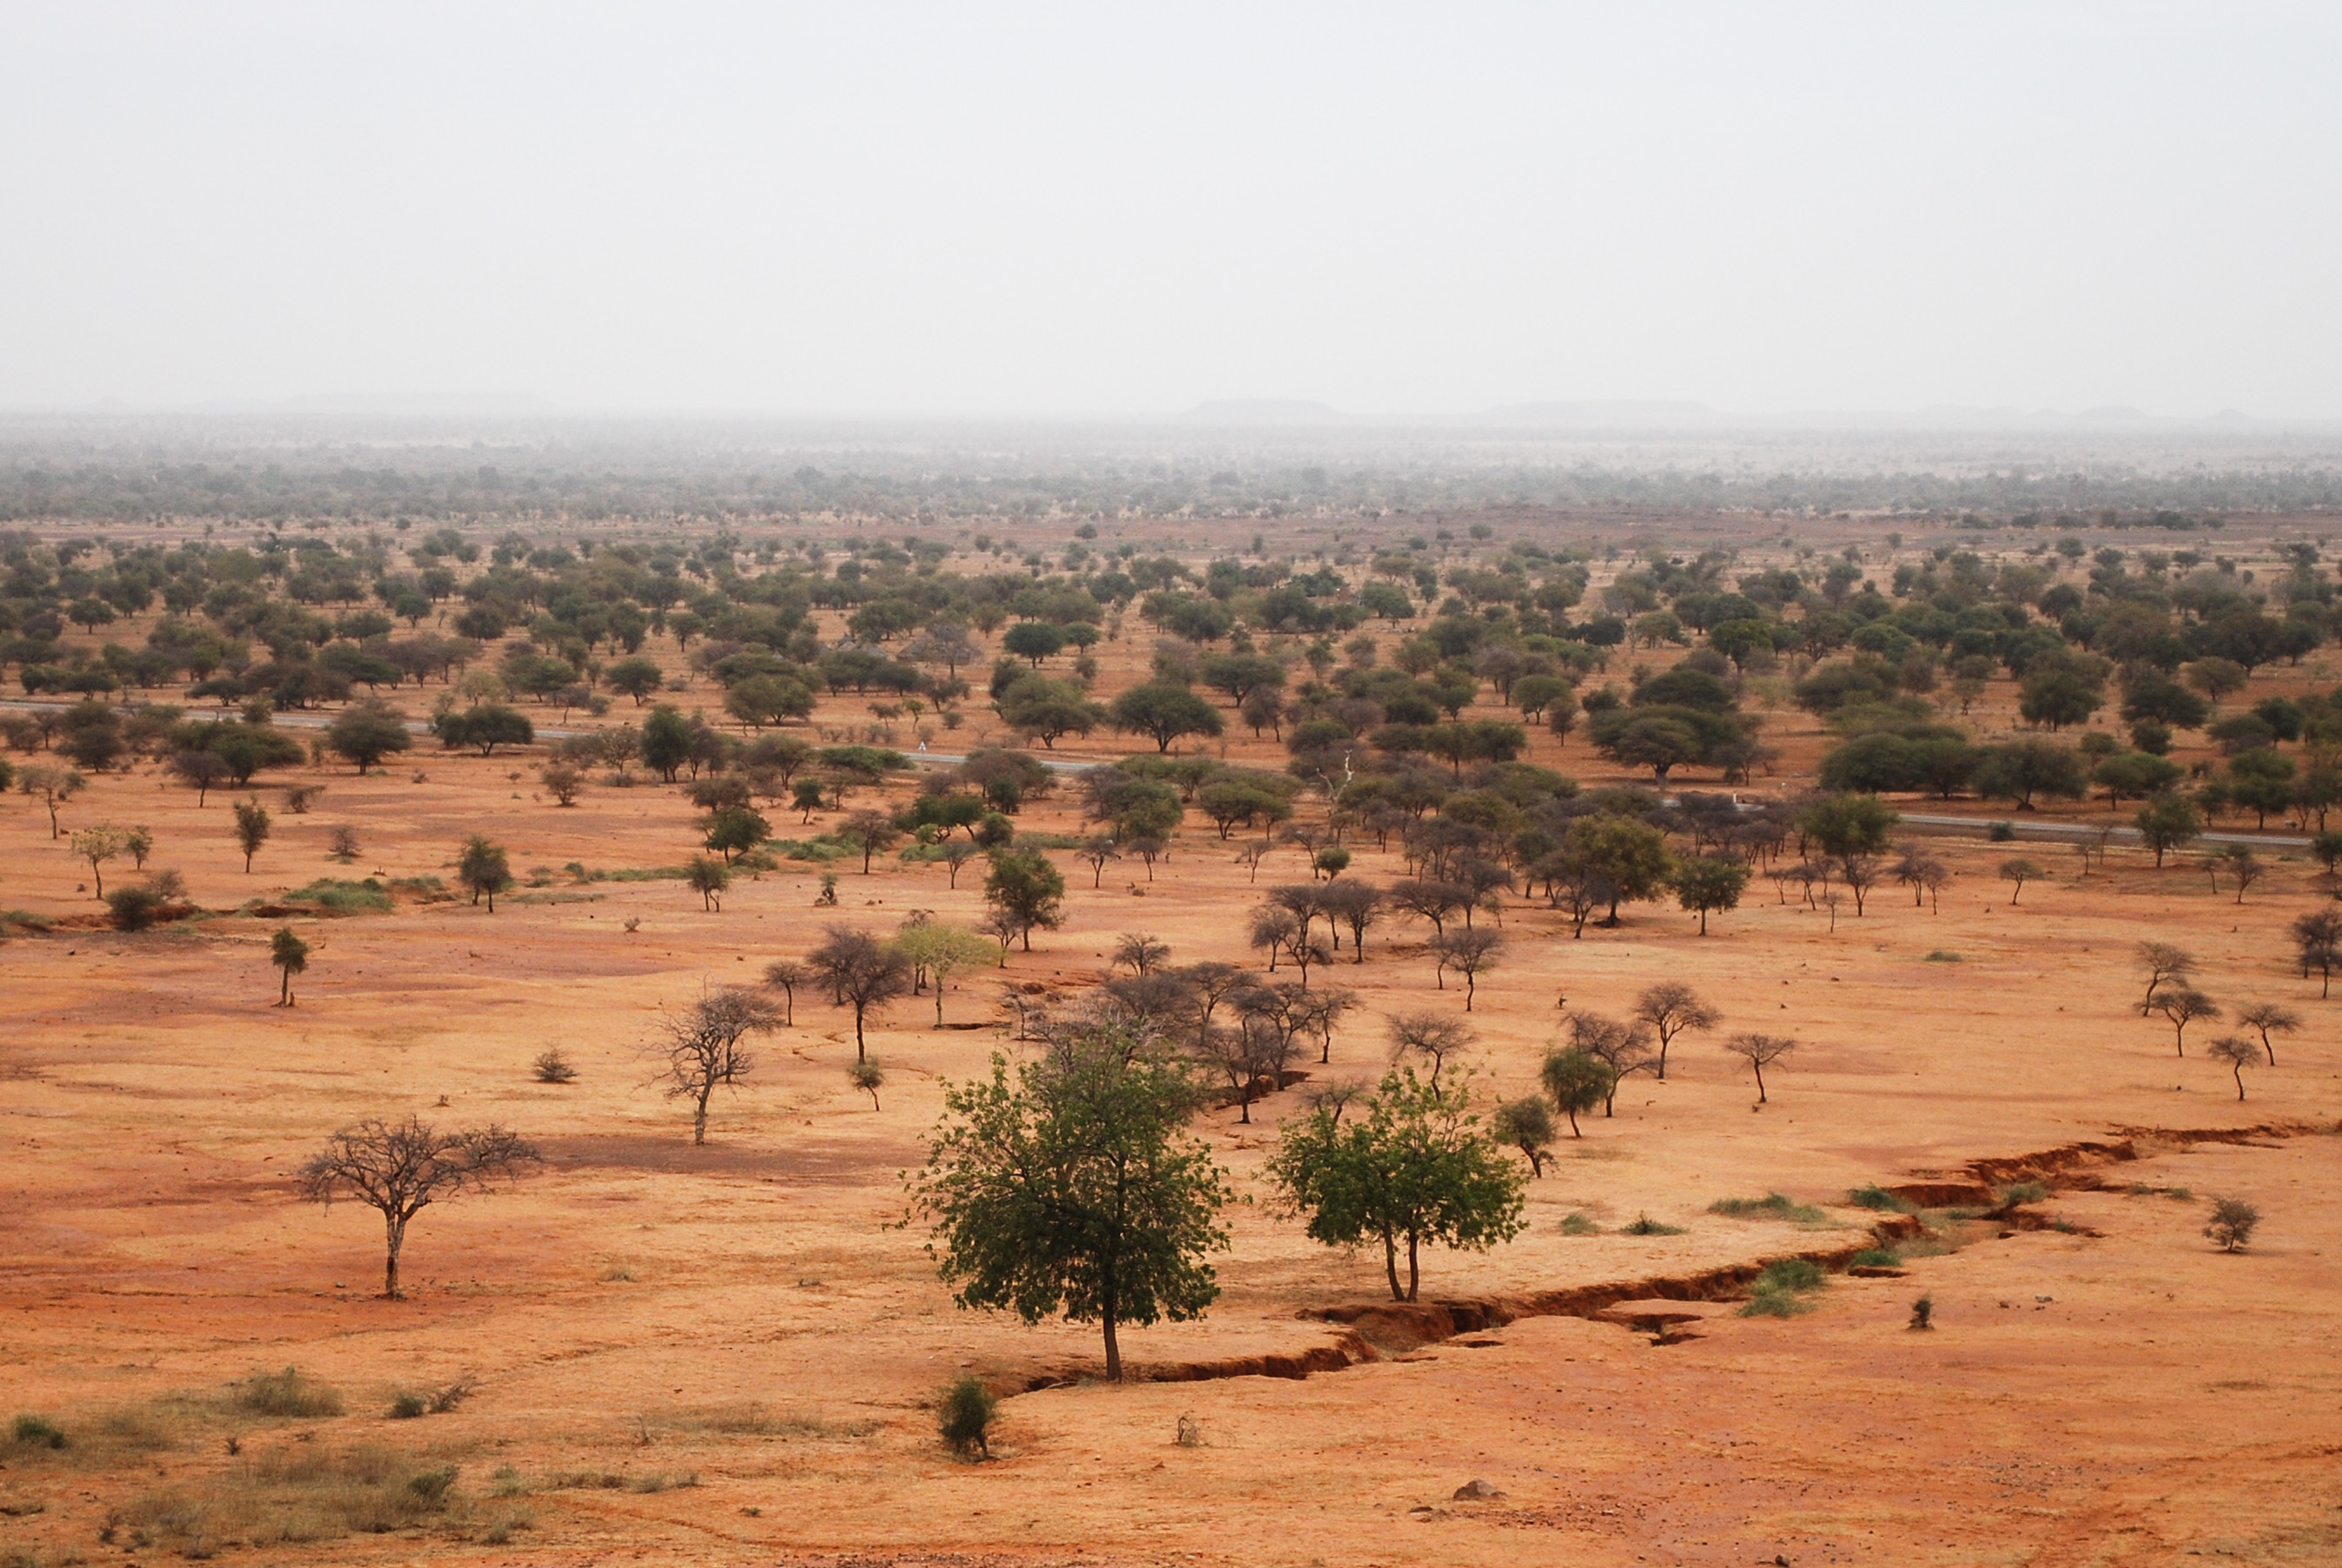 Aerial image of the Sahel, which is a transition zone between the arid north and the tropical green forest that borders the maritime coast.